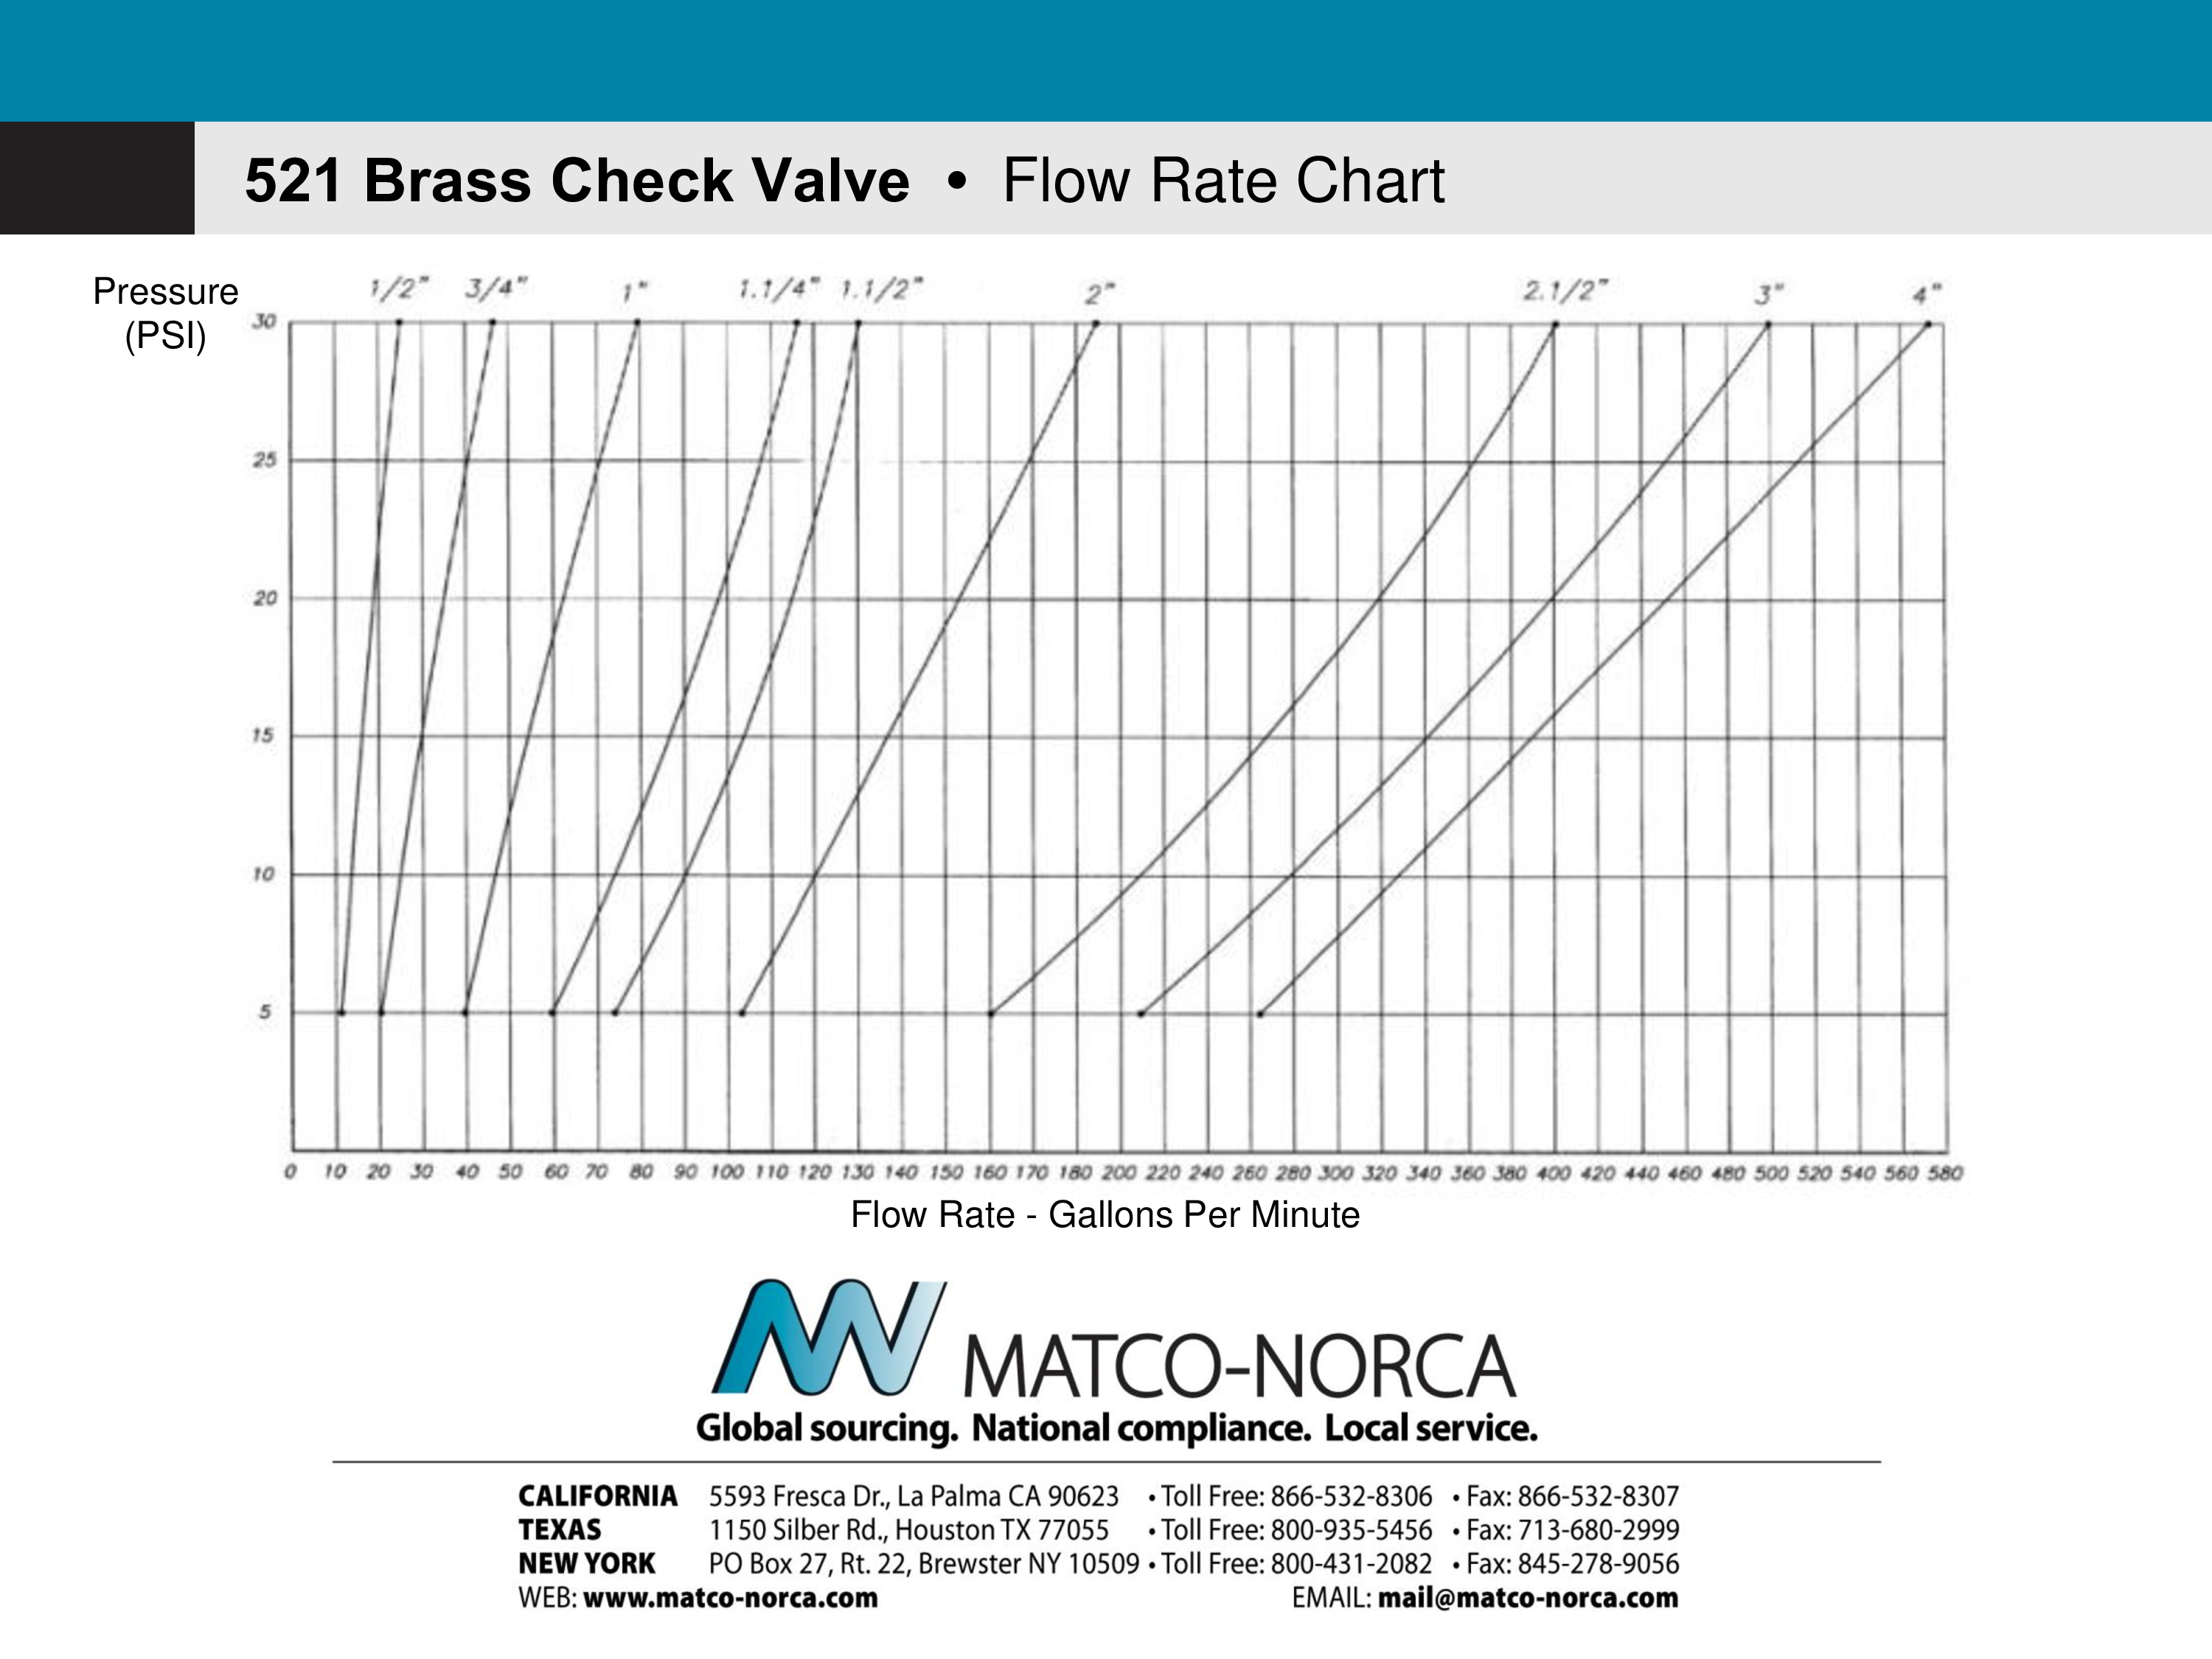 Rate Flow Chart Brass Check Valve Pressure PSI in minutes main image